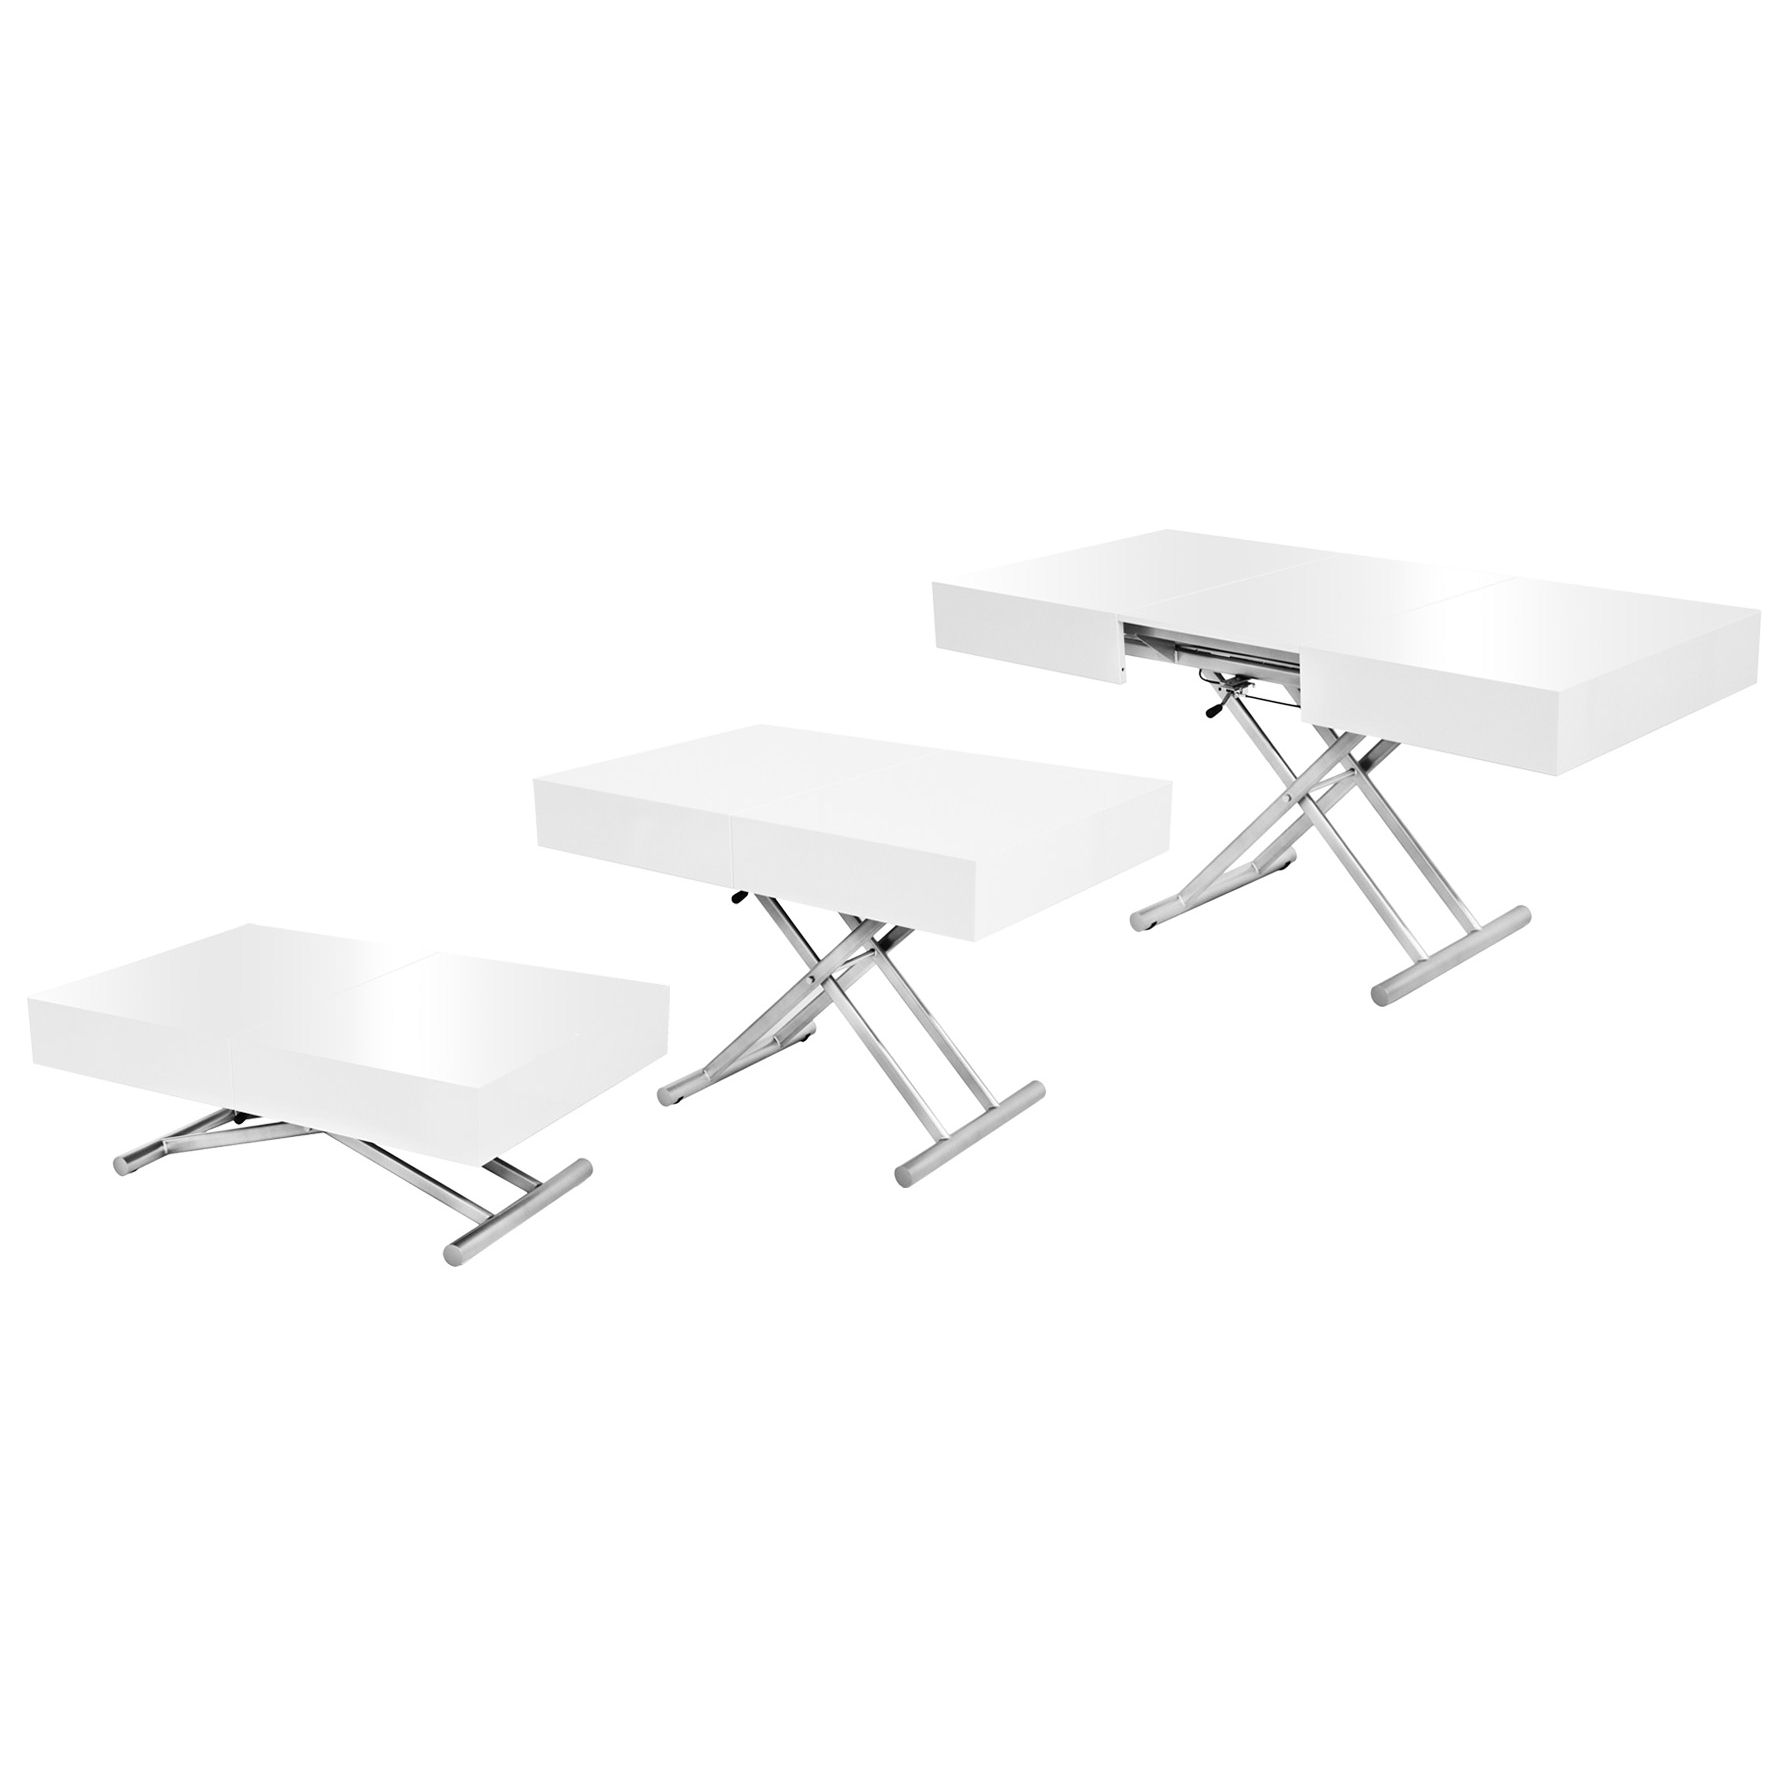 Deco in paris table basse relevable extensible blanc laque smart tab rel mdf smart blanc - Table basse relevable blanc laque ...